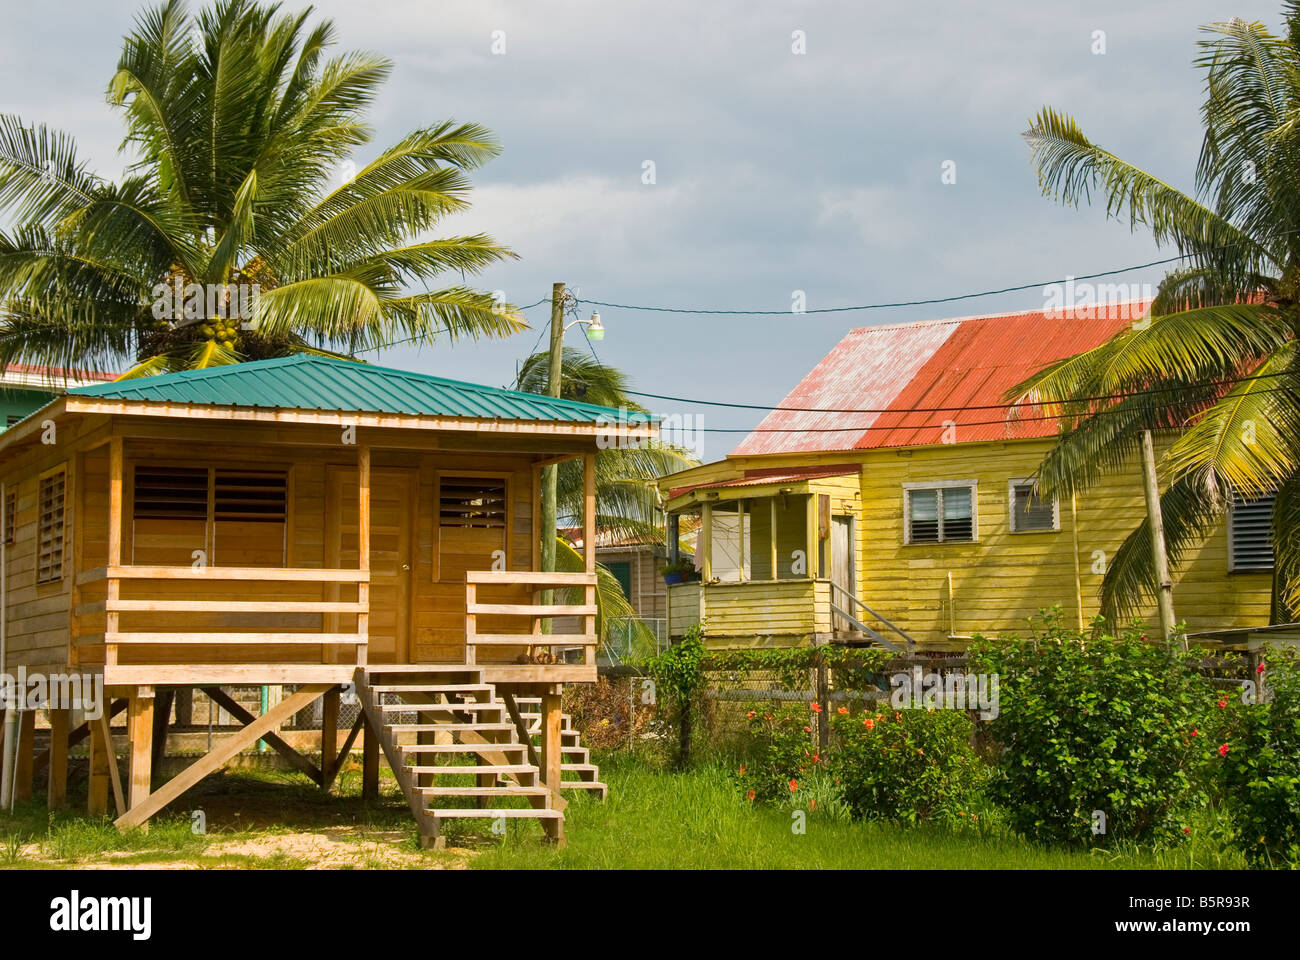 Belize city homes local architecture small wood buildings for Local house builders